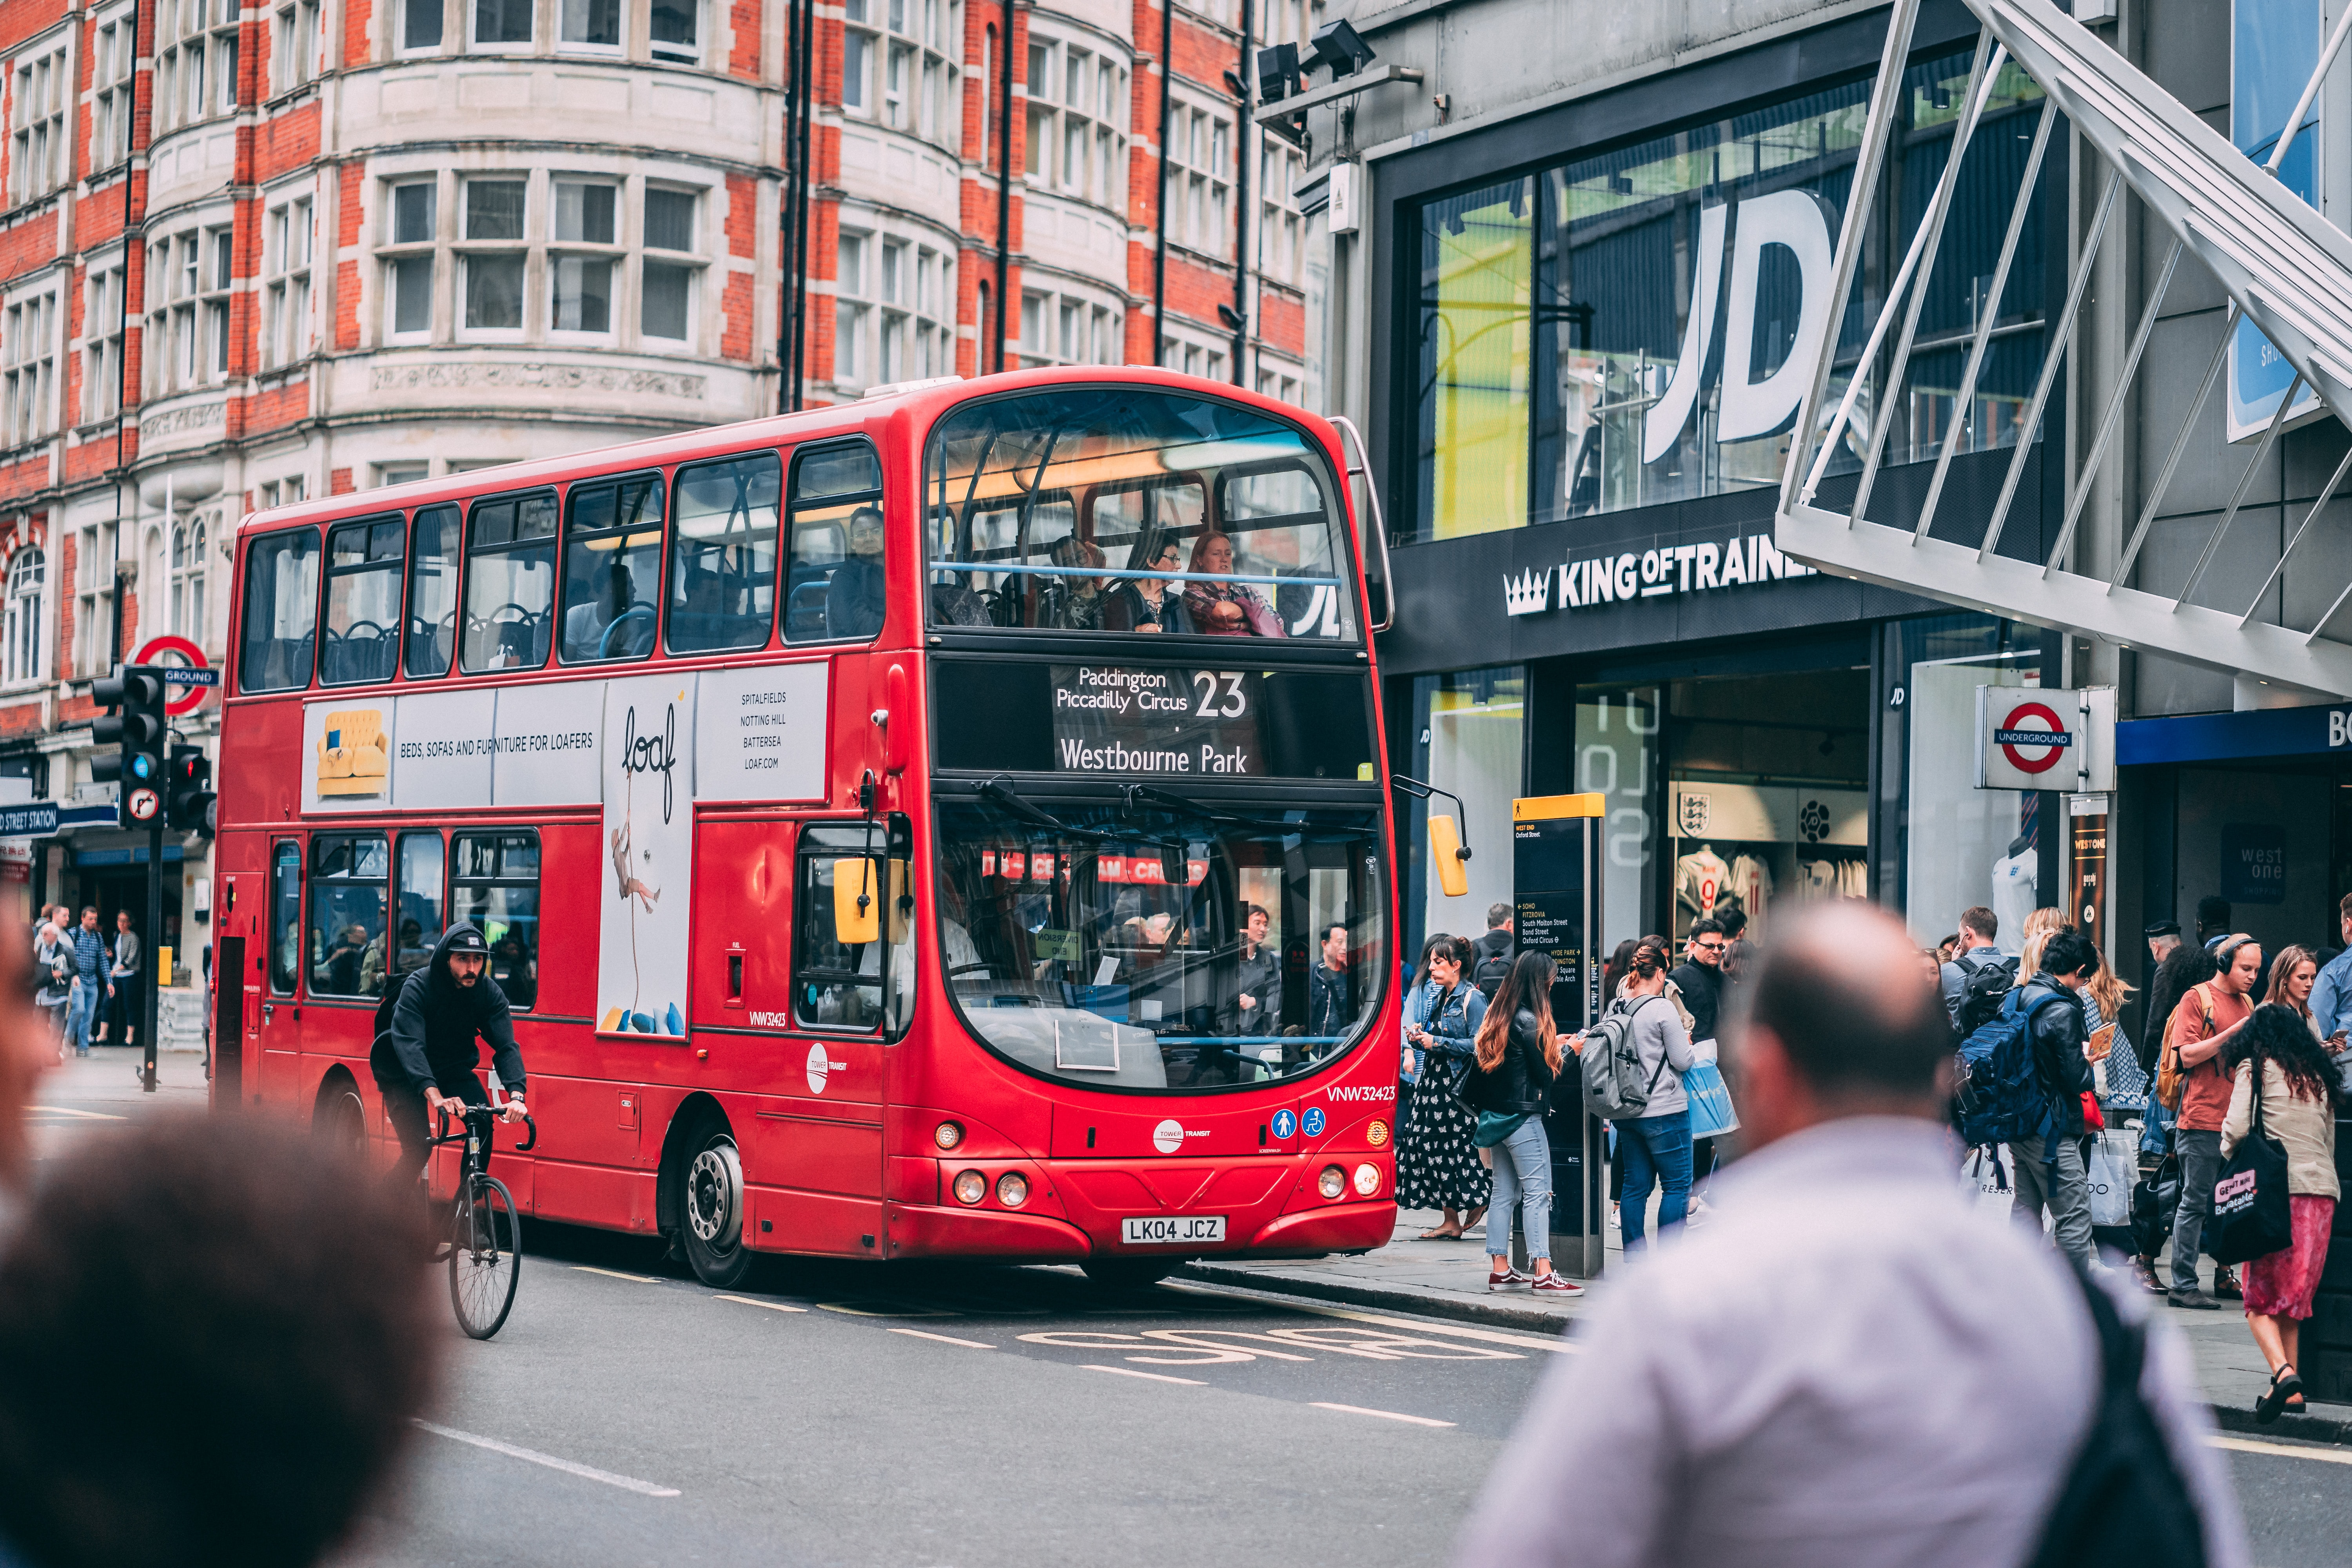 red double-decker bus